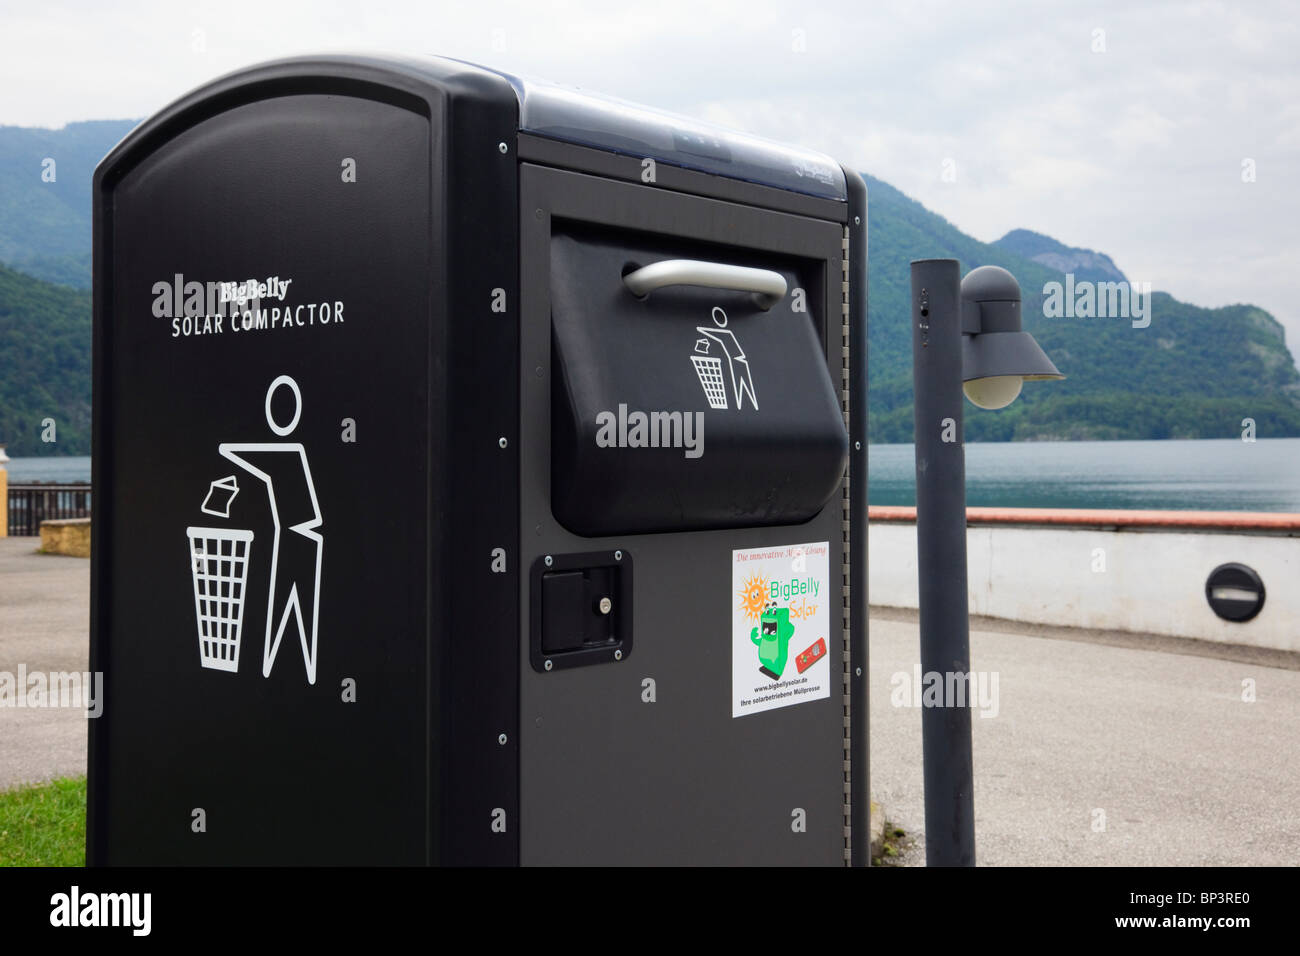 BigBelly Solar powered litter compactor bin for compressing rubbish - Stock Image